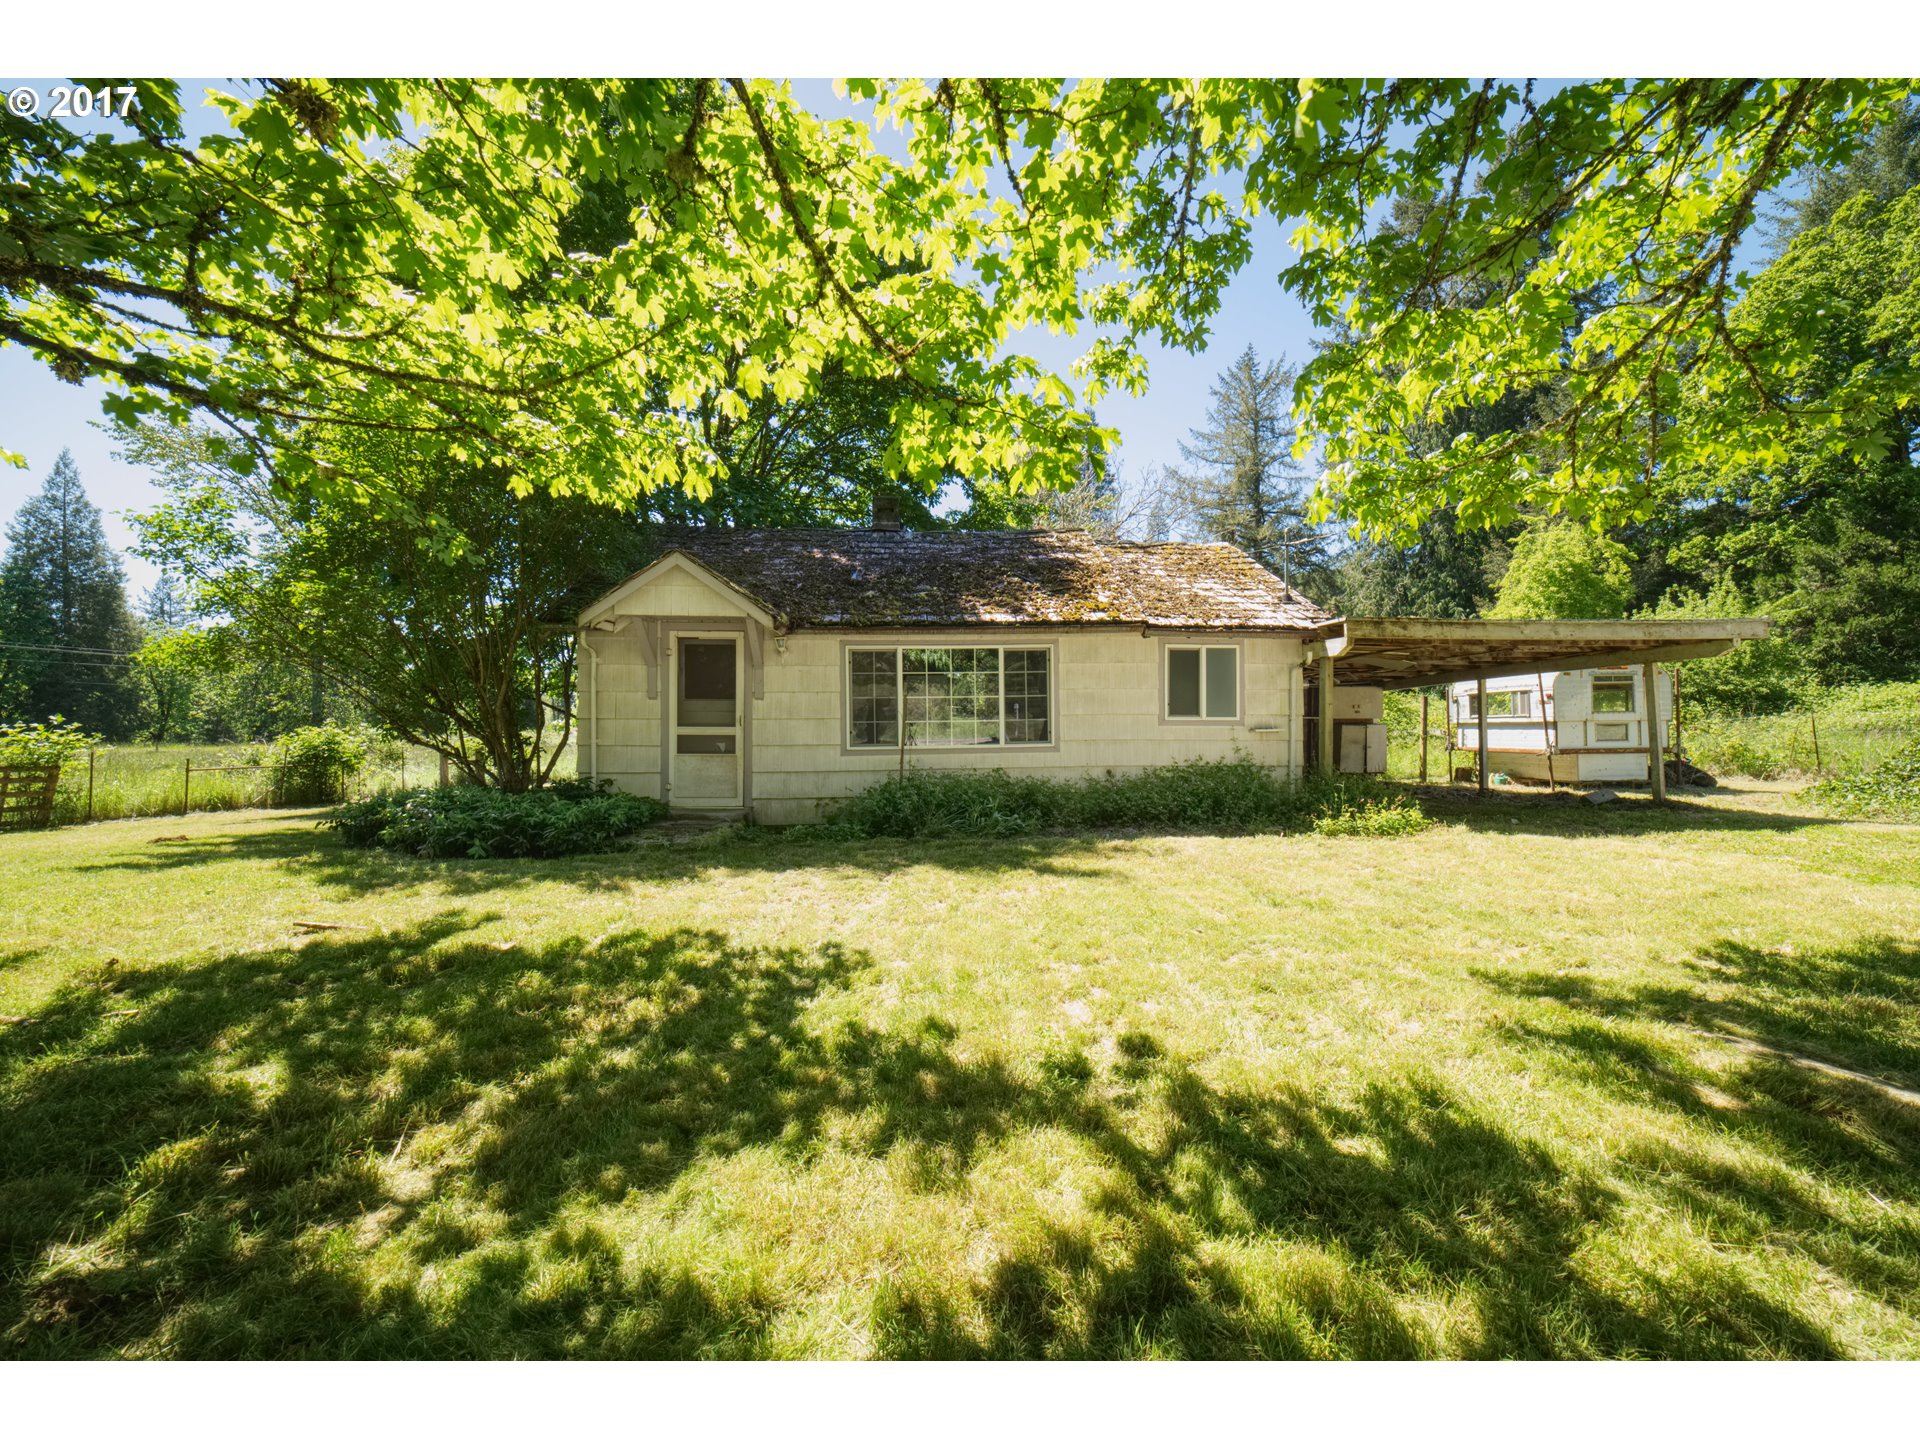 39921 REUBEN LEIGH RD, Lowell, OR 97452